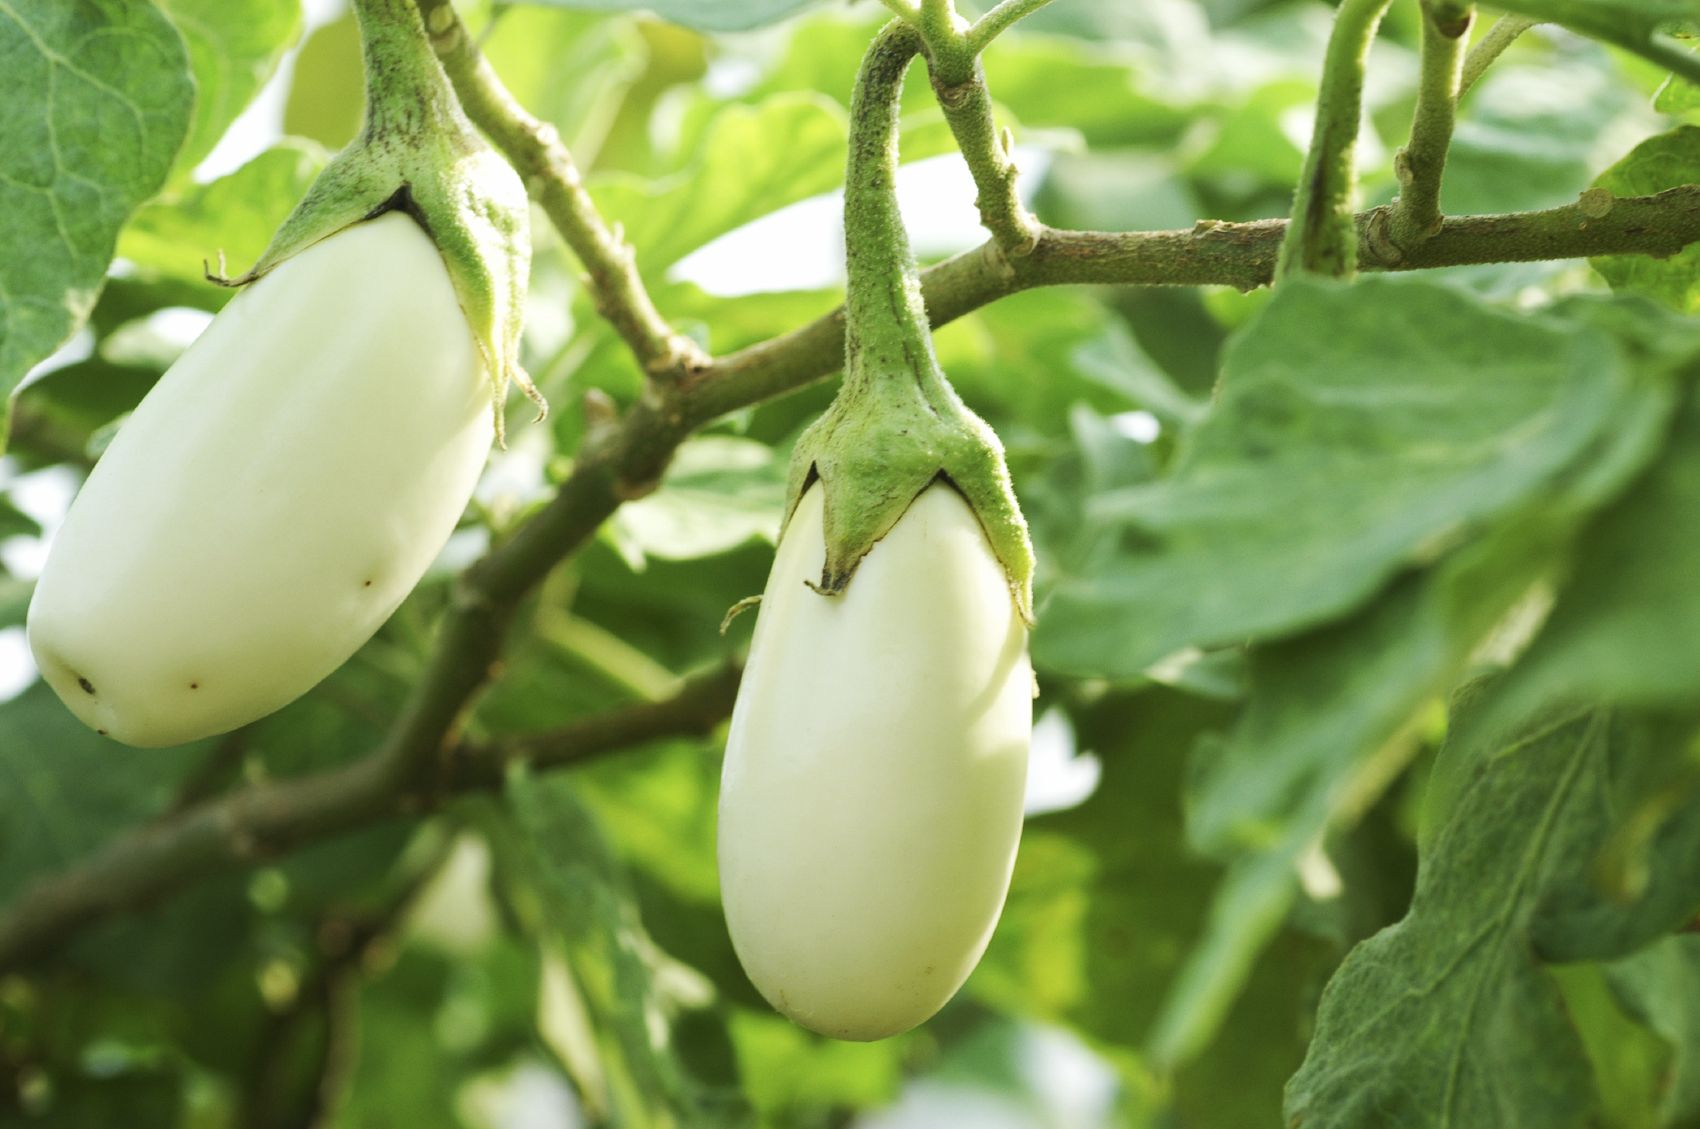 Common Eggplant Varieties Learn About The Types Of Eggplant White Eggplant Eggplant Varieties Eggplant